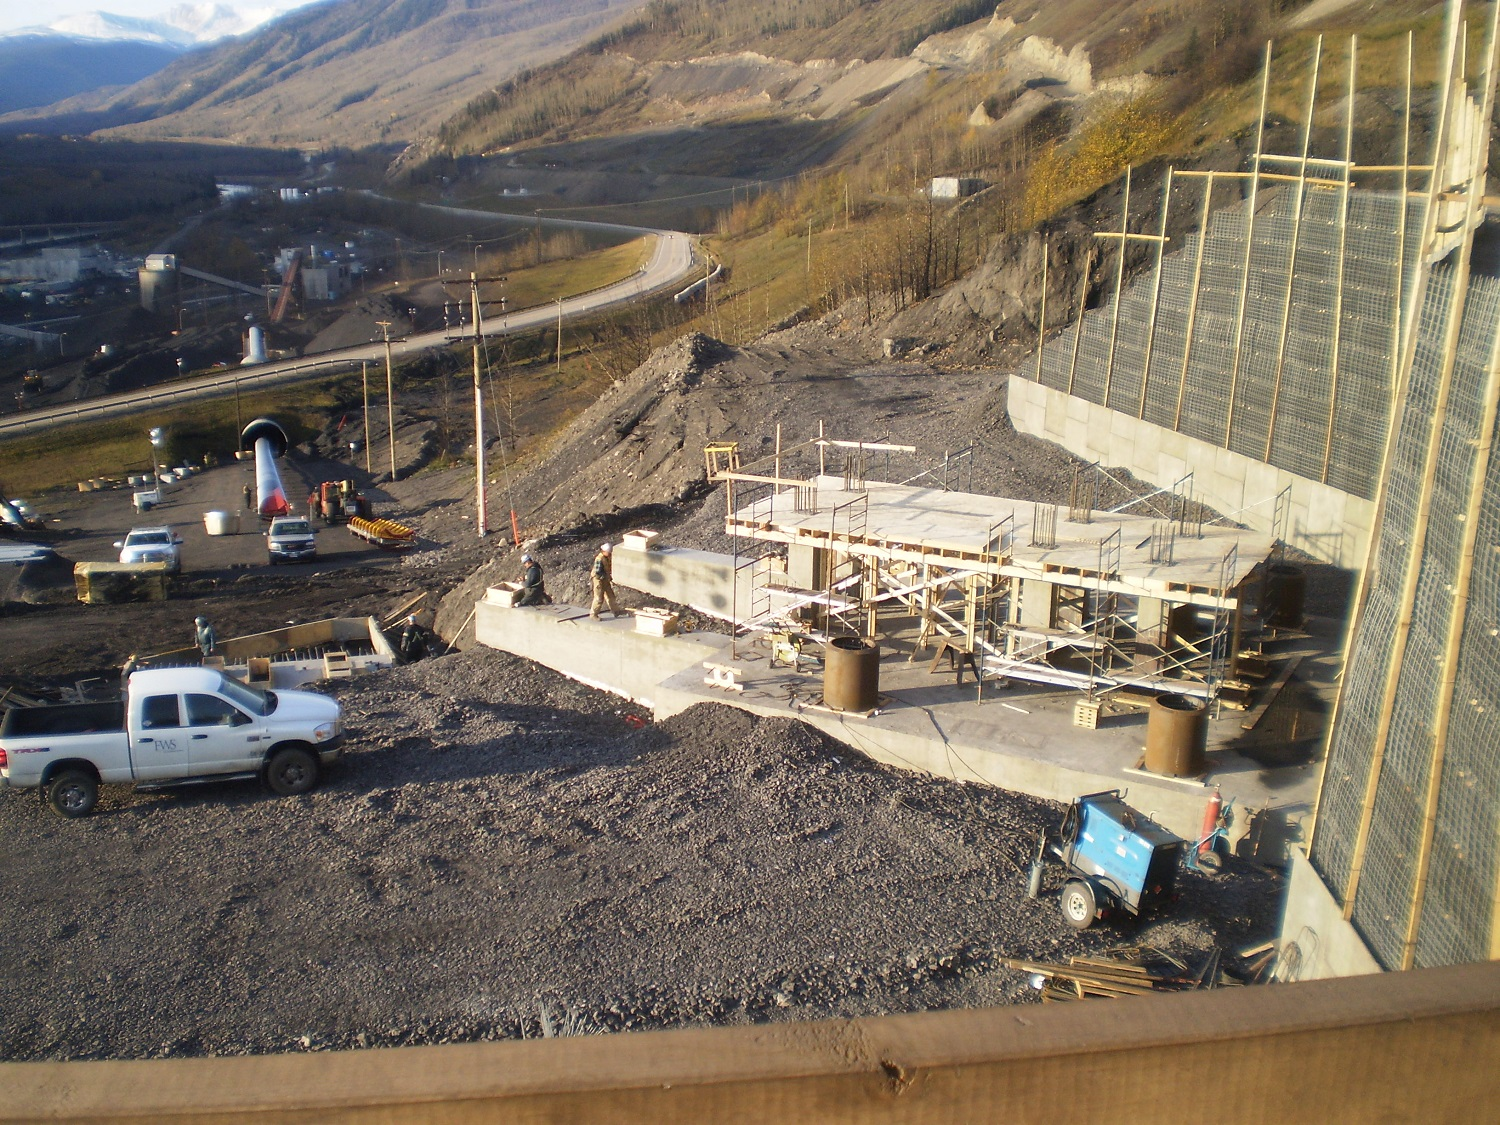 grande Cache primary crusher and coal conveying system Bulk material handling Mining Coal Crusher Steel wing walls